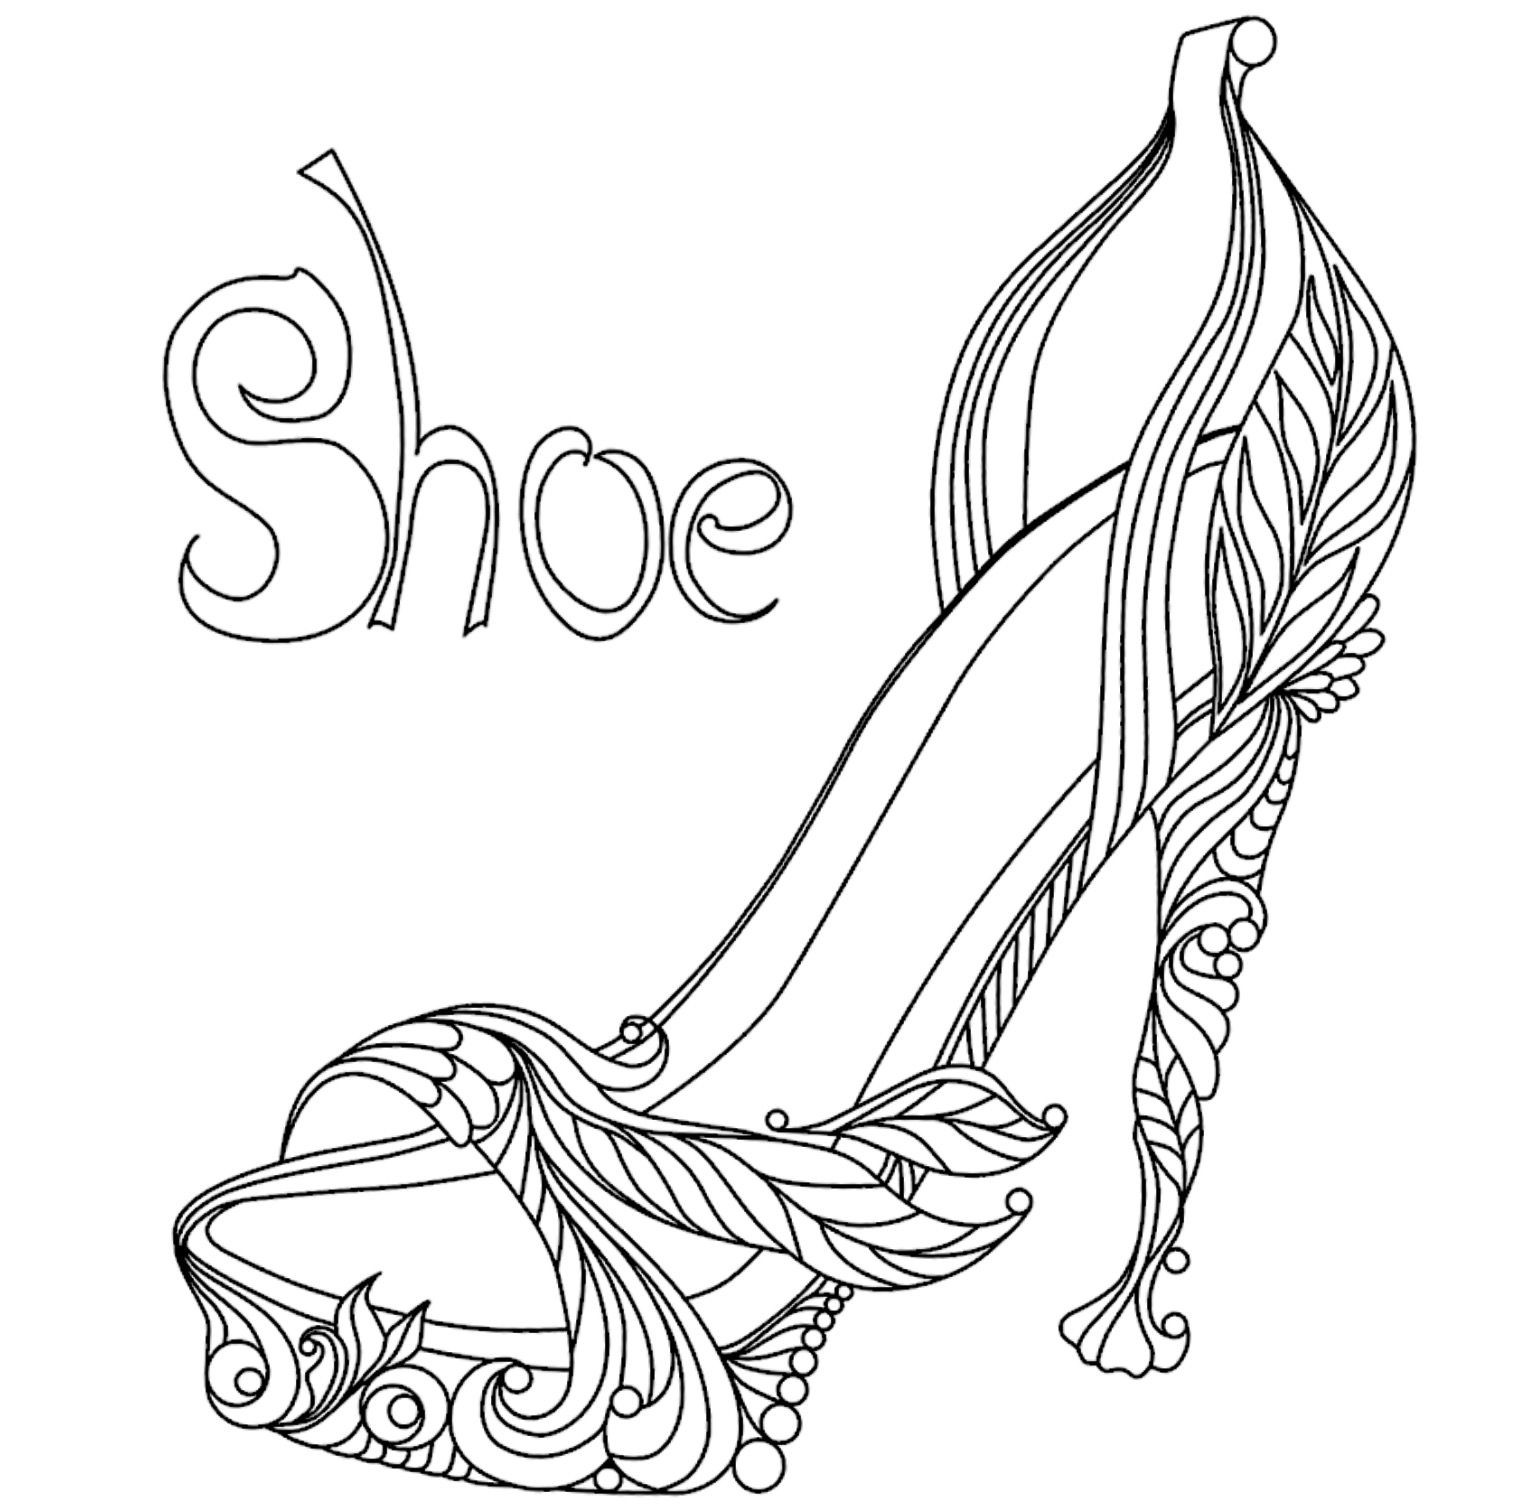 Coloring Pages Of Shoes  Shoe coloring page